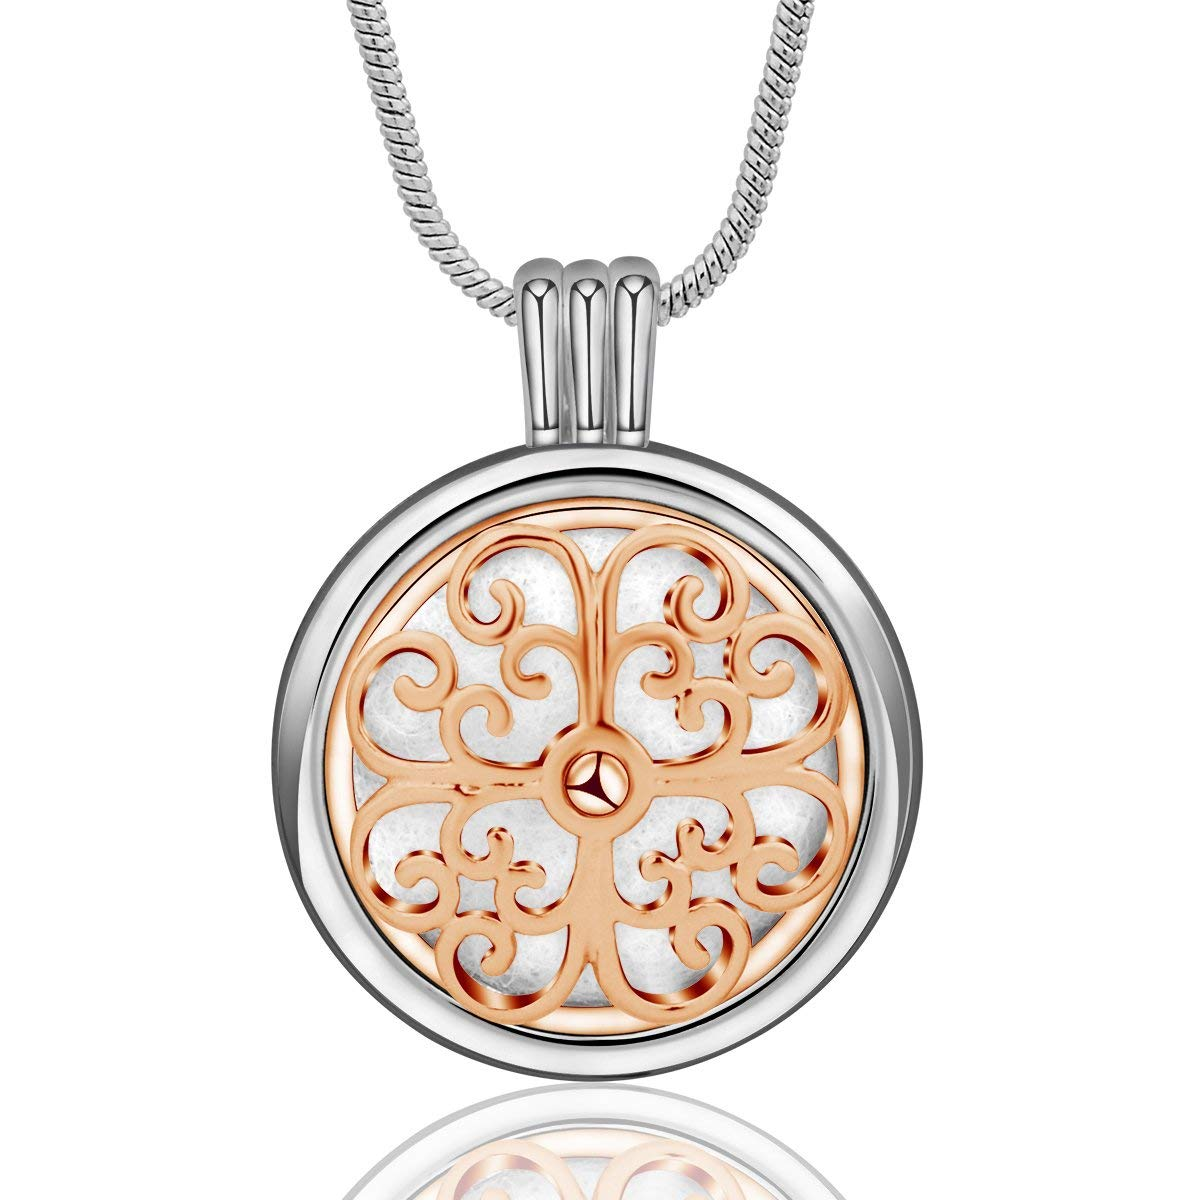 INFUSEU Cross Flower Essential Oil Diffuser Necklace Aromatherapy Locket Pendant + 12PCS Refill Replacement Pads for Fleur De Lis Women Scent Jewelry Set (Rose Gold)